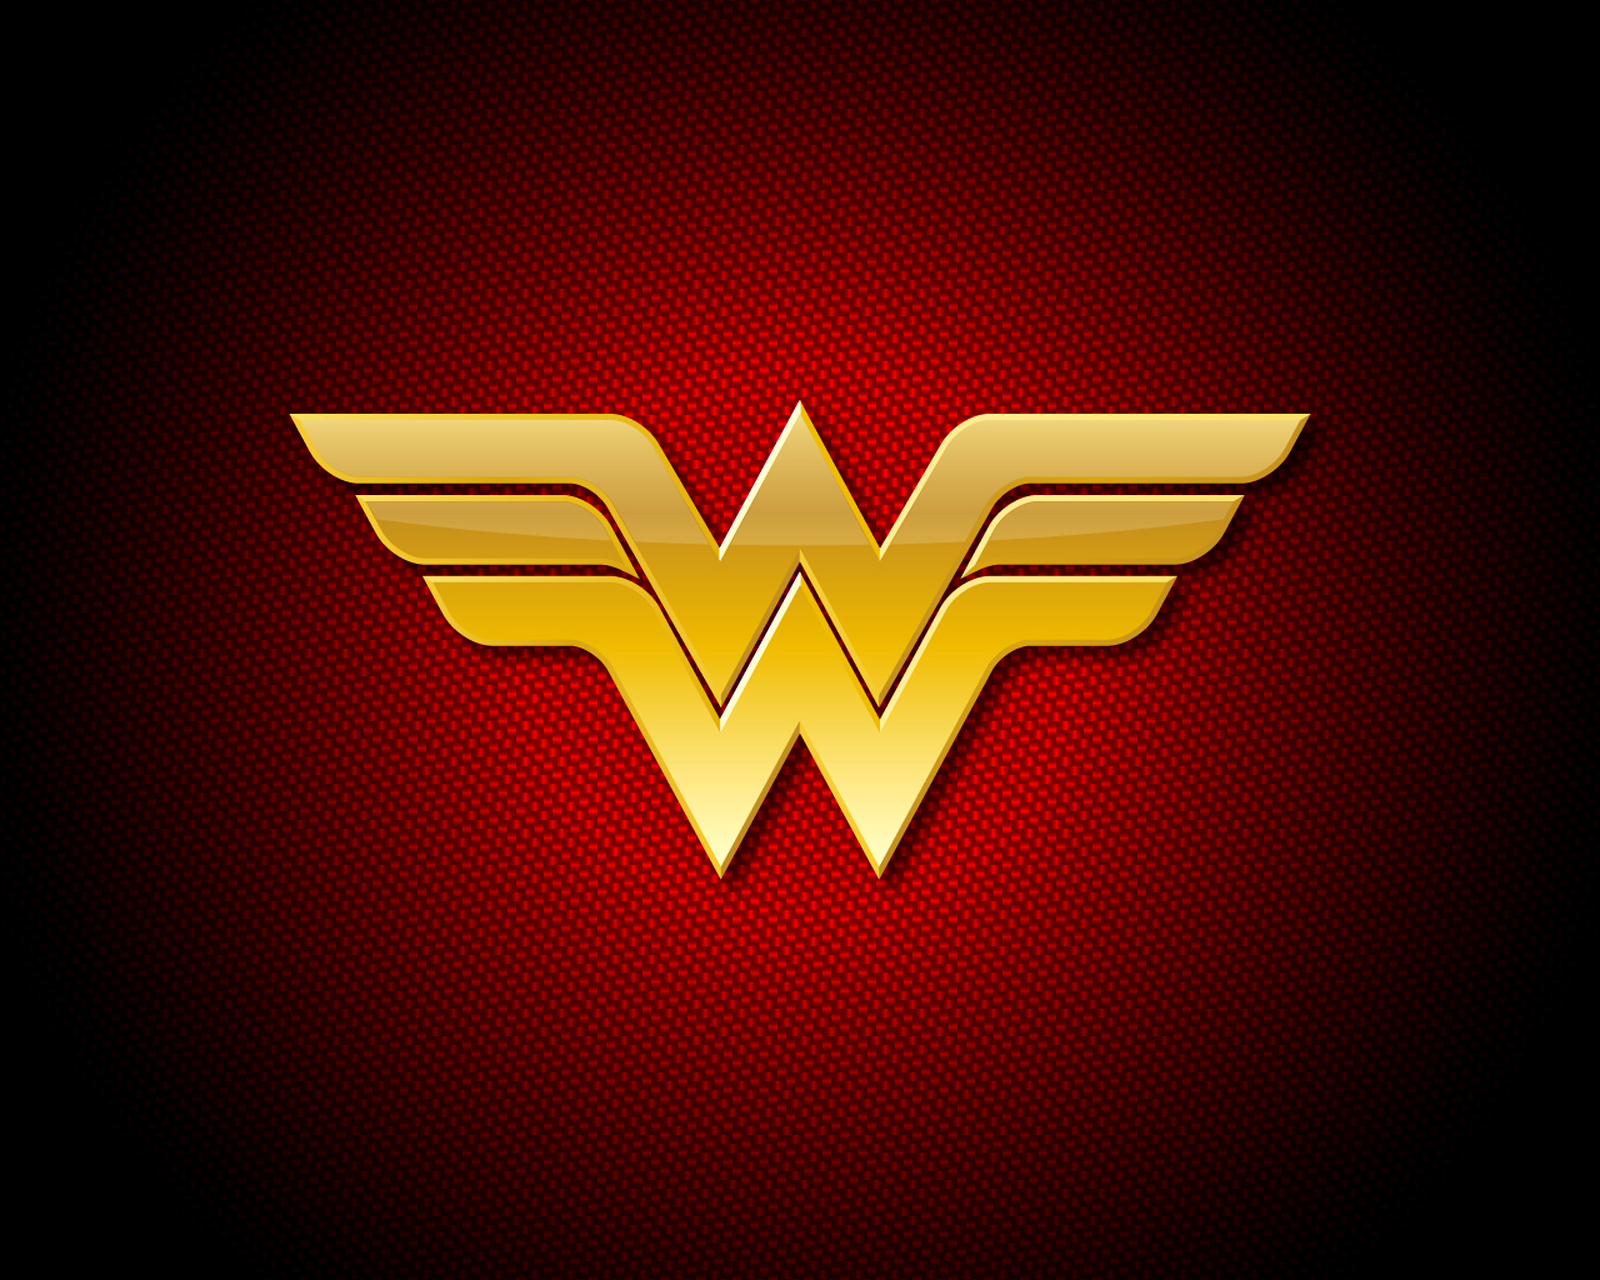 Wonder Woman Hd Wallpaper: Wonder Women DC Comics HD Symbol Wallpapers